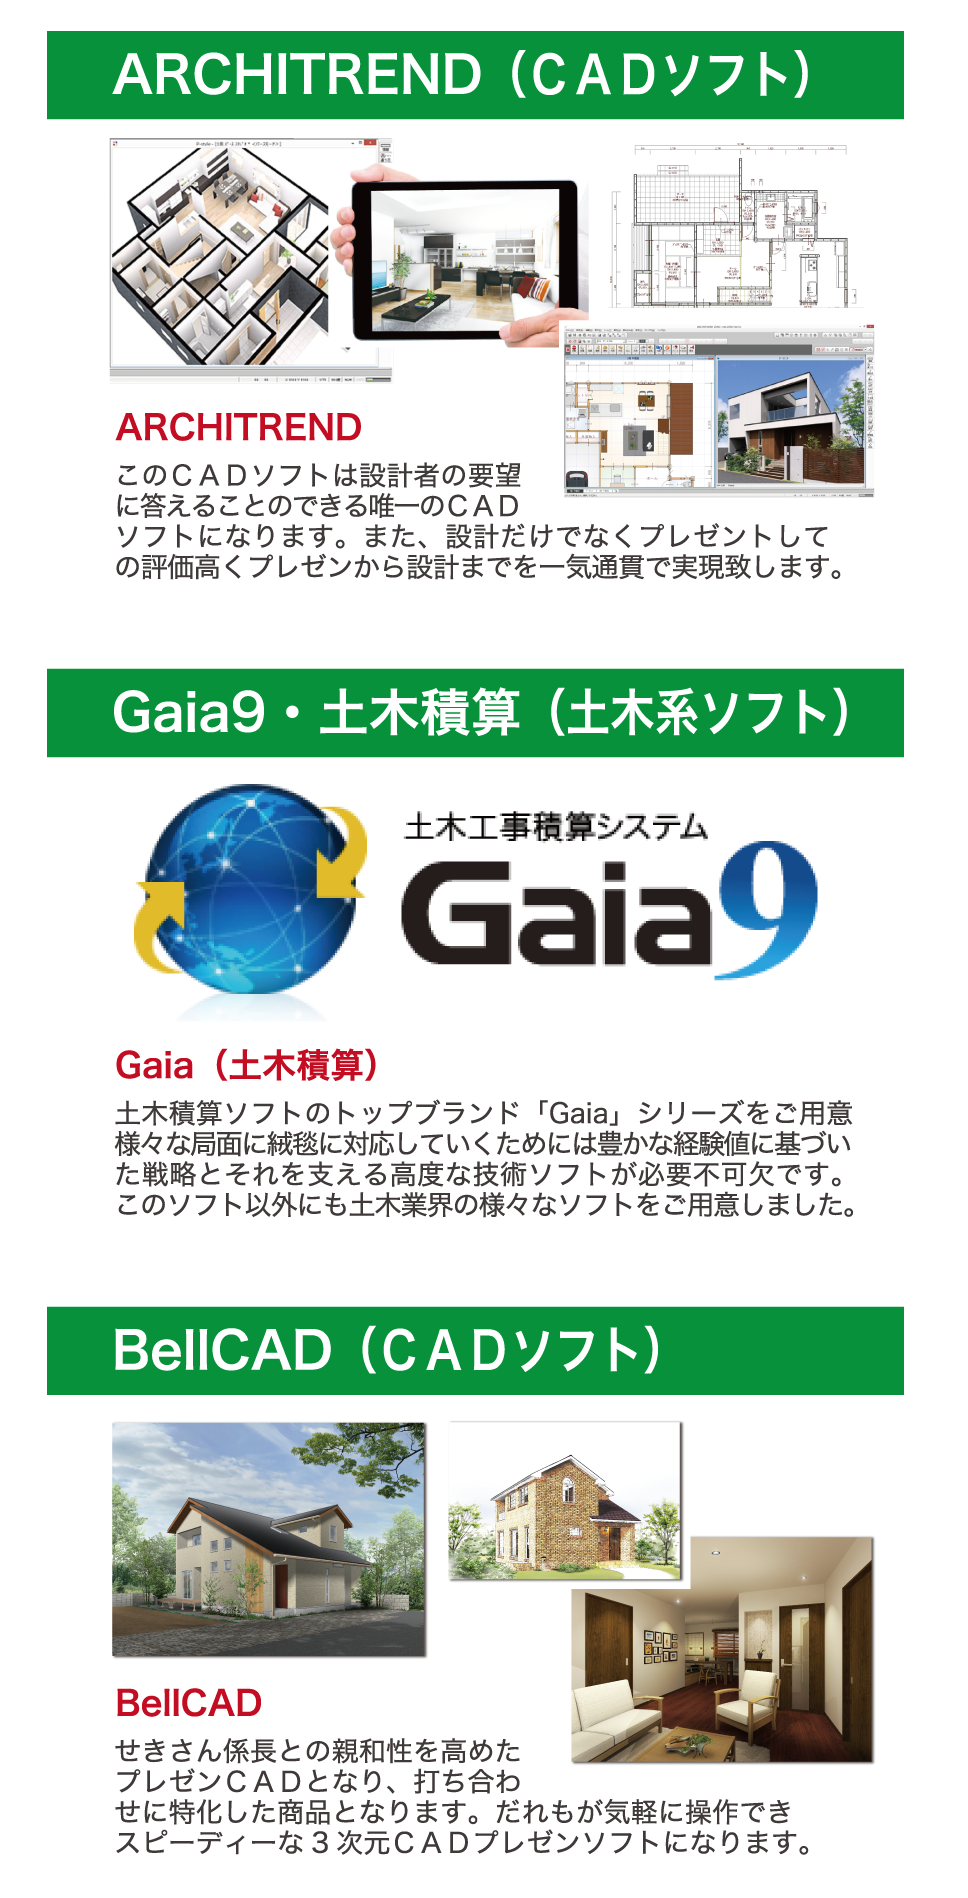 ARCHITREND(CADソフト) Gaia9・土木系ソフト BellCAD(CADソフト)